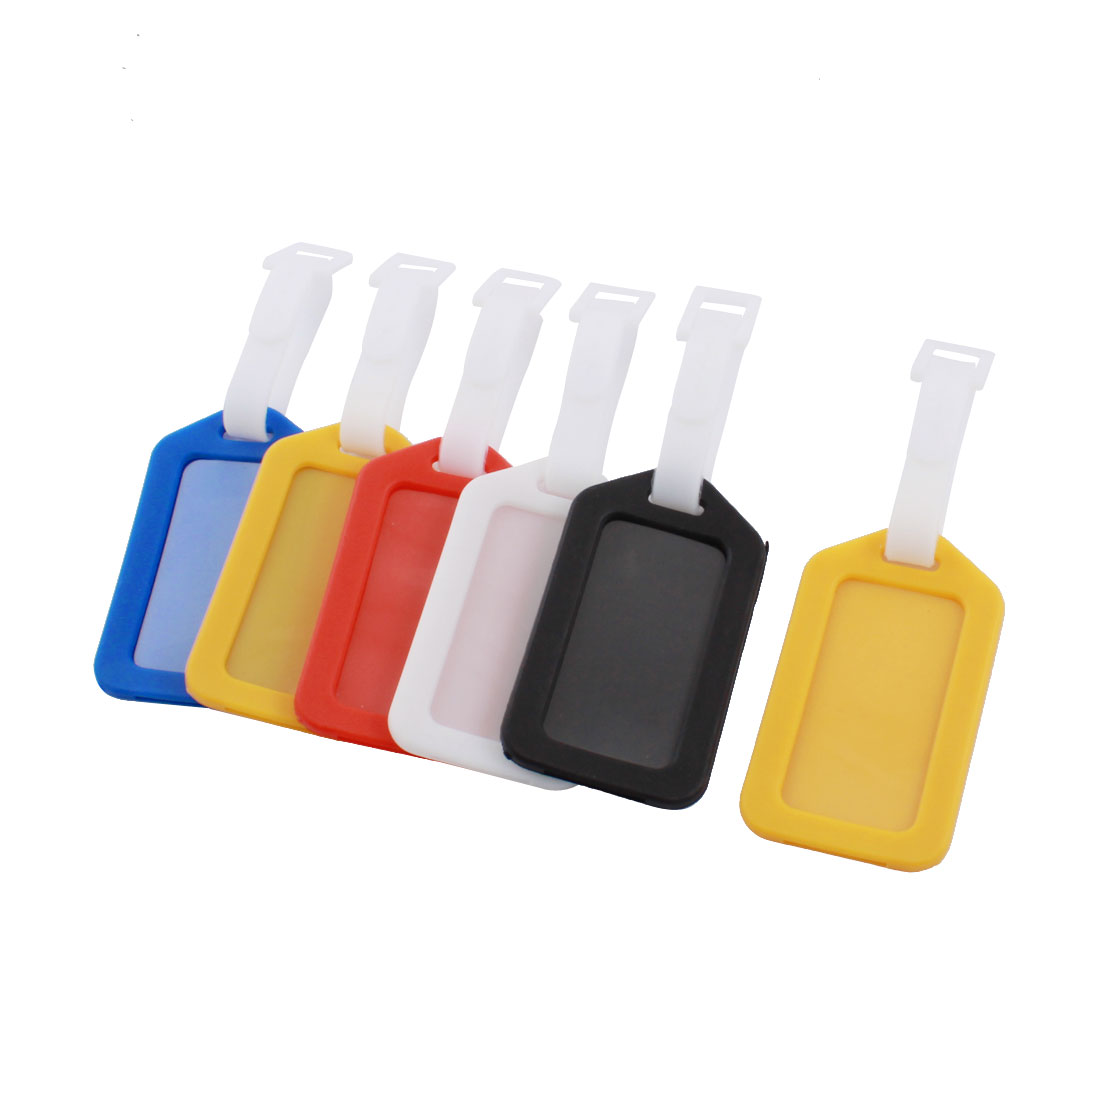 Assorted Color Plastic Address Information Name Labels Travel Suitcase Luggage Tag 6 Pcs